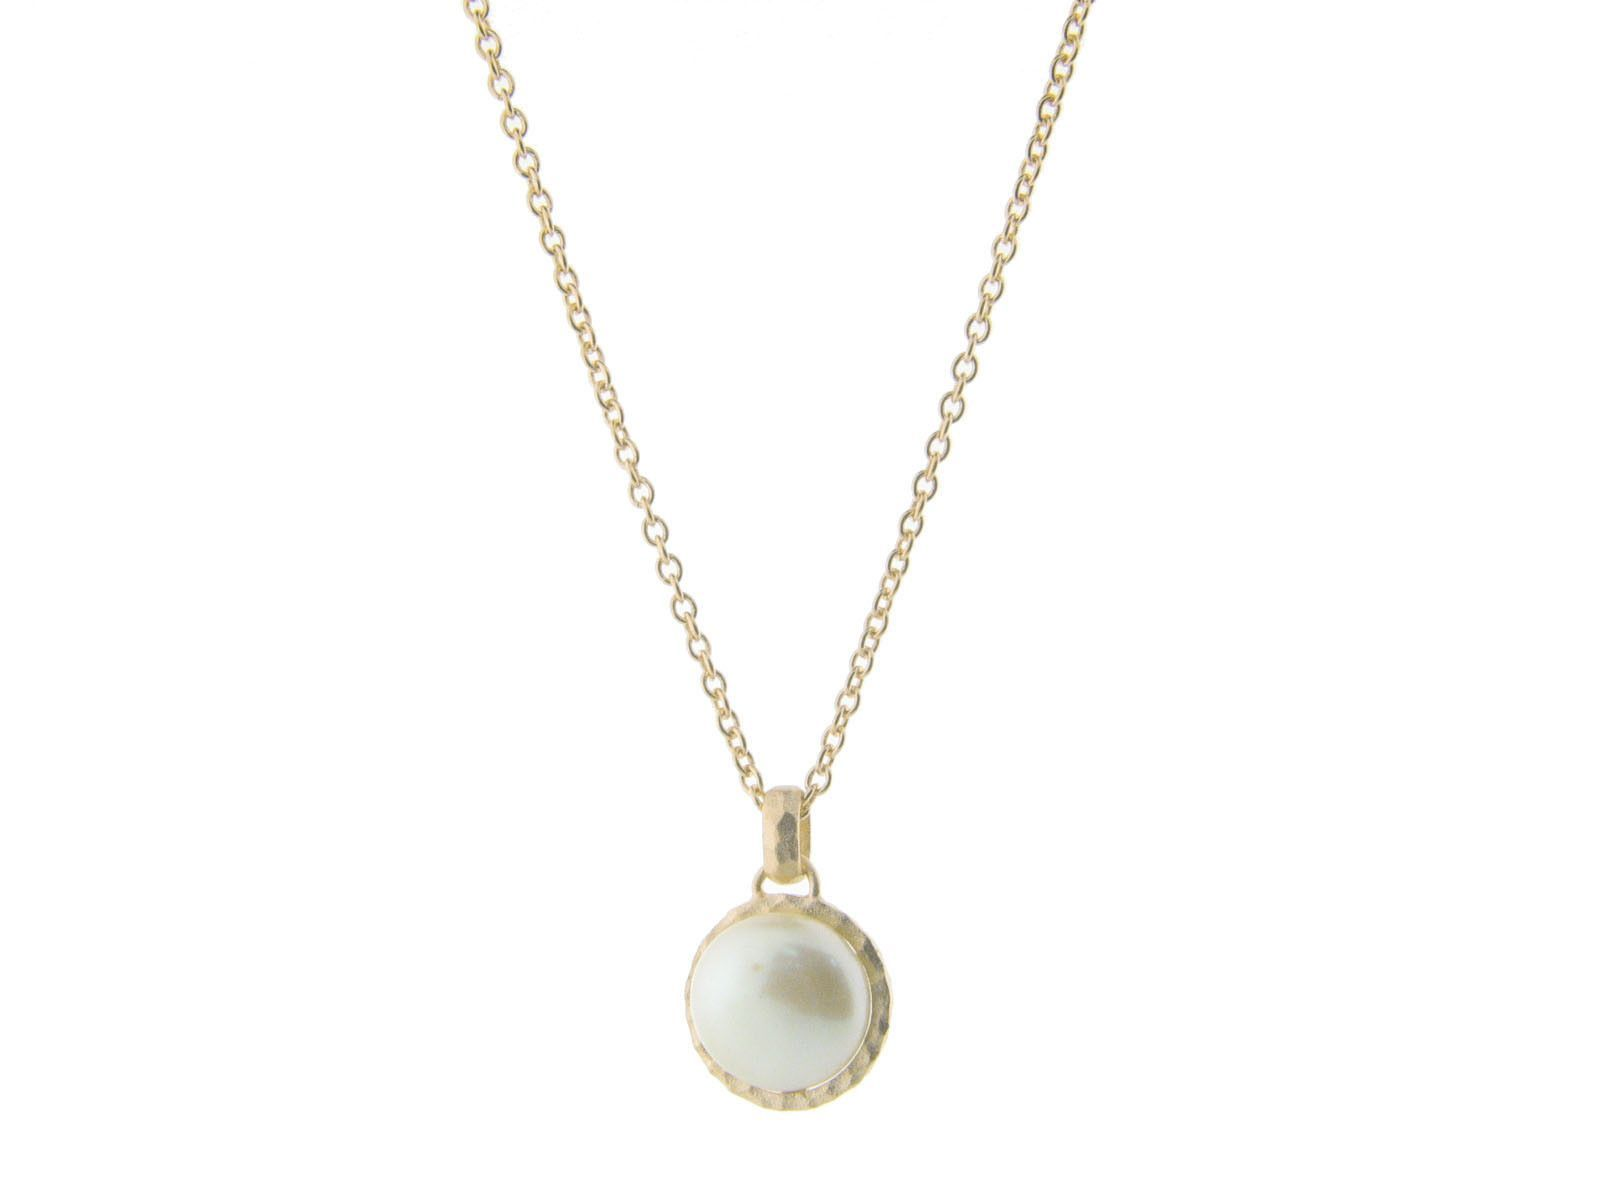 Fronay co hammered gold tone freshwater coin pearl pendant necklace